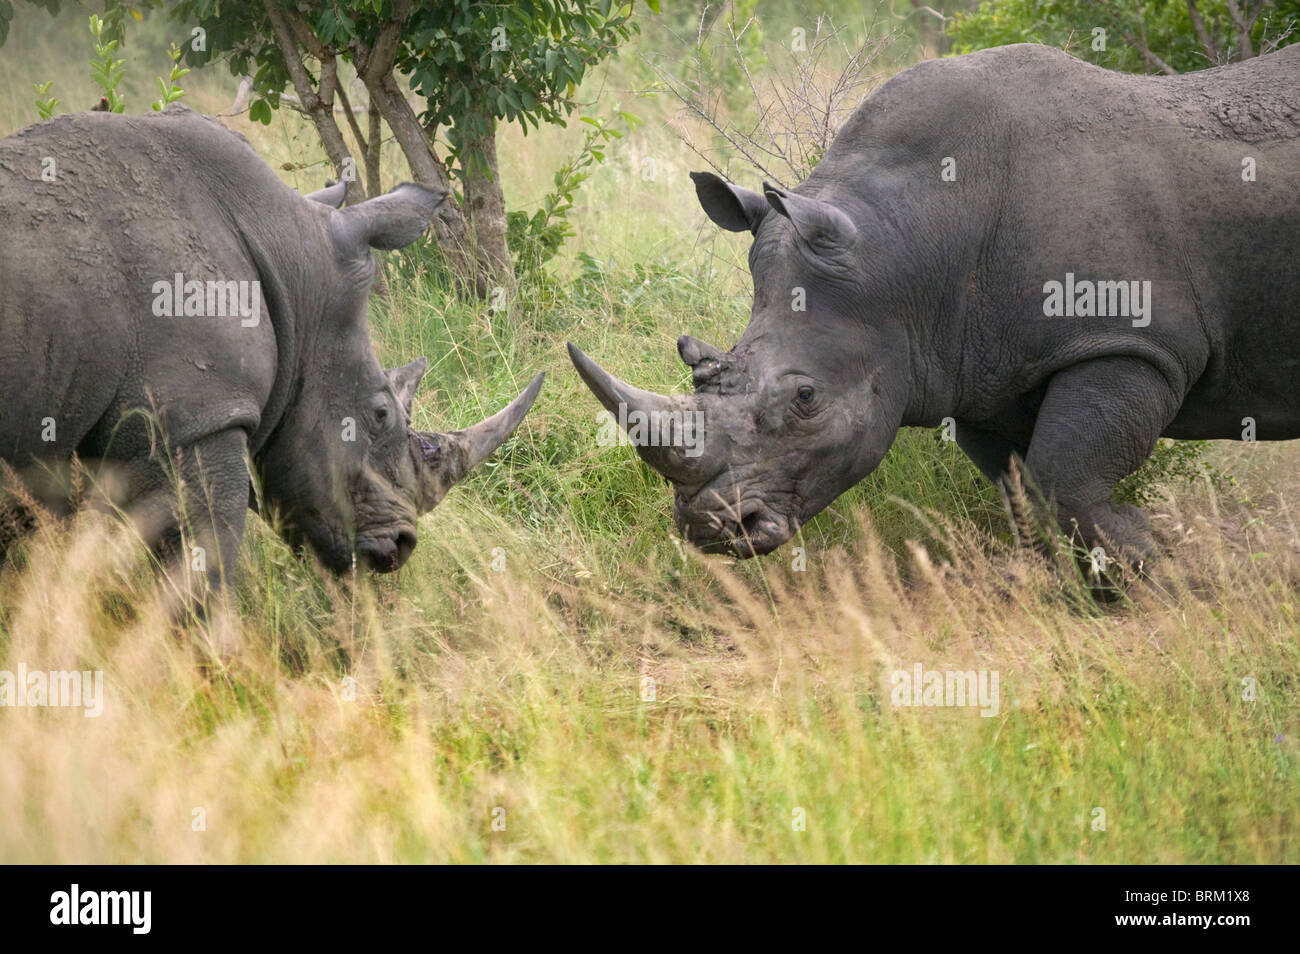 Two adult rhino facing each other Stock Photo